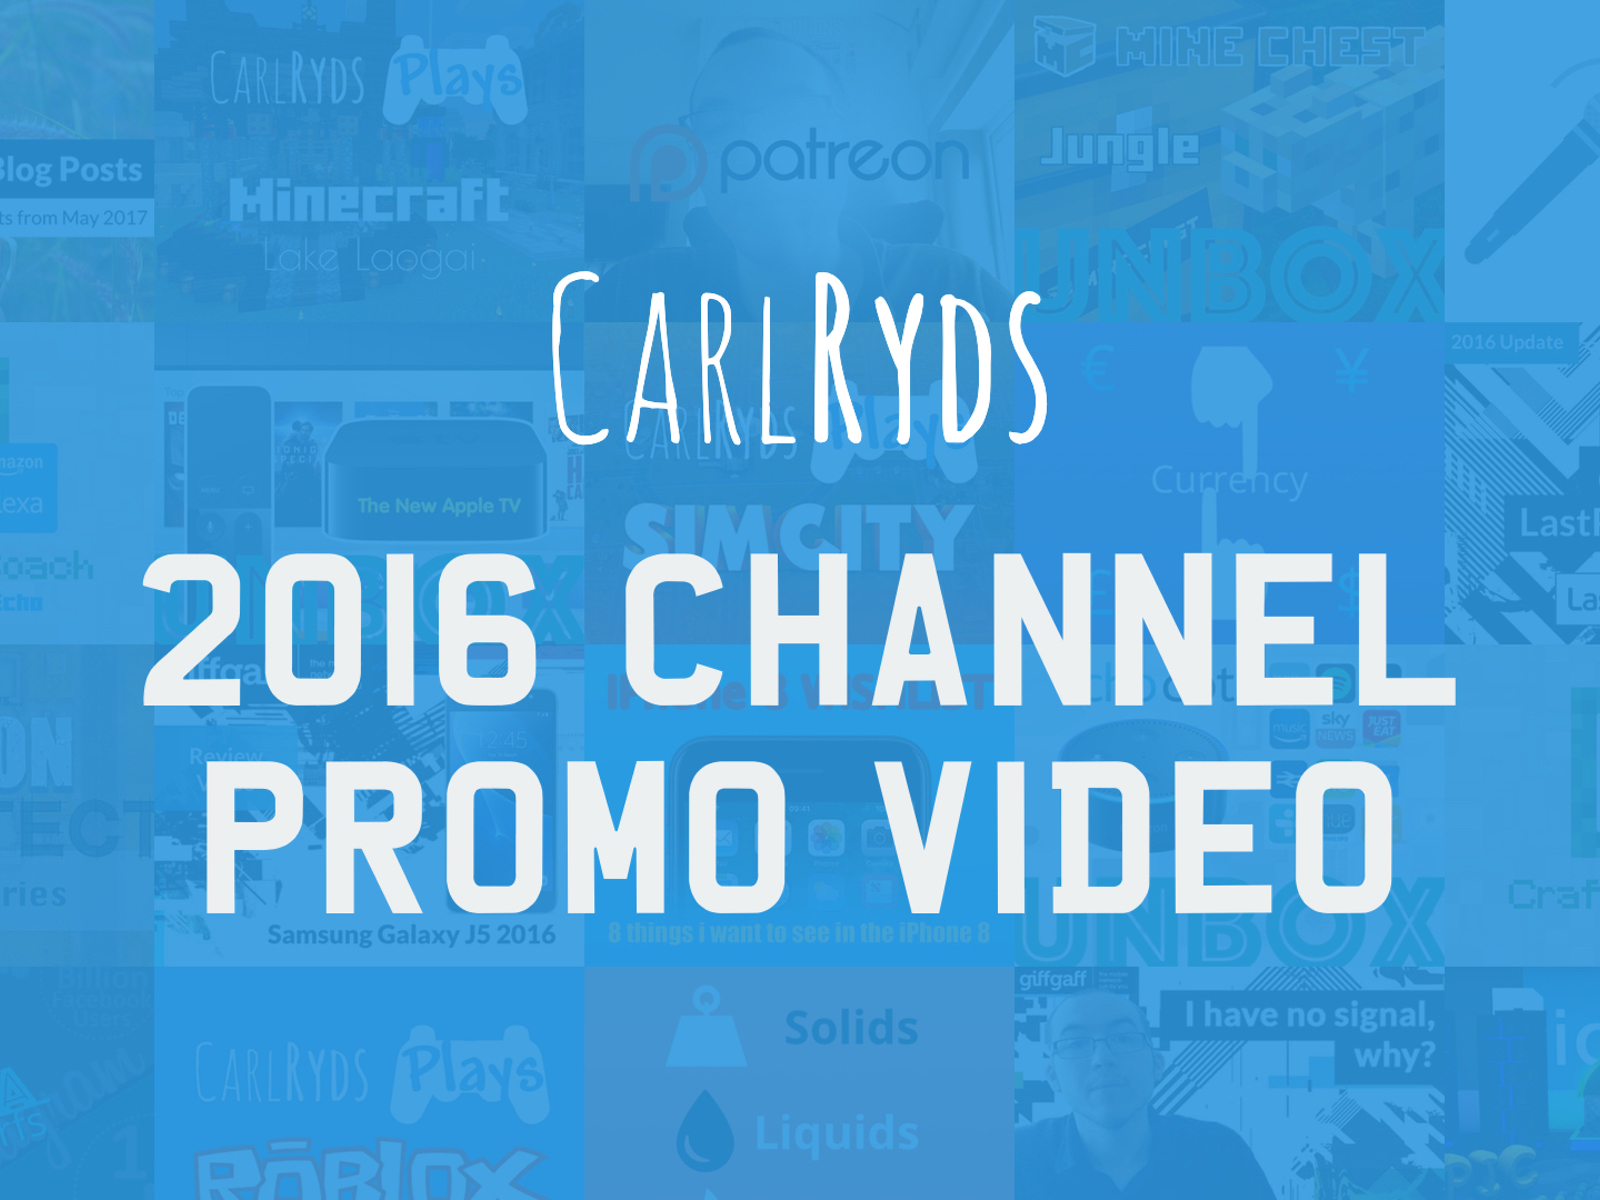 2016 Channel Promo Video